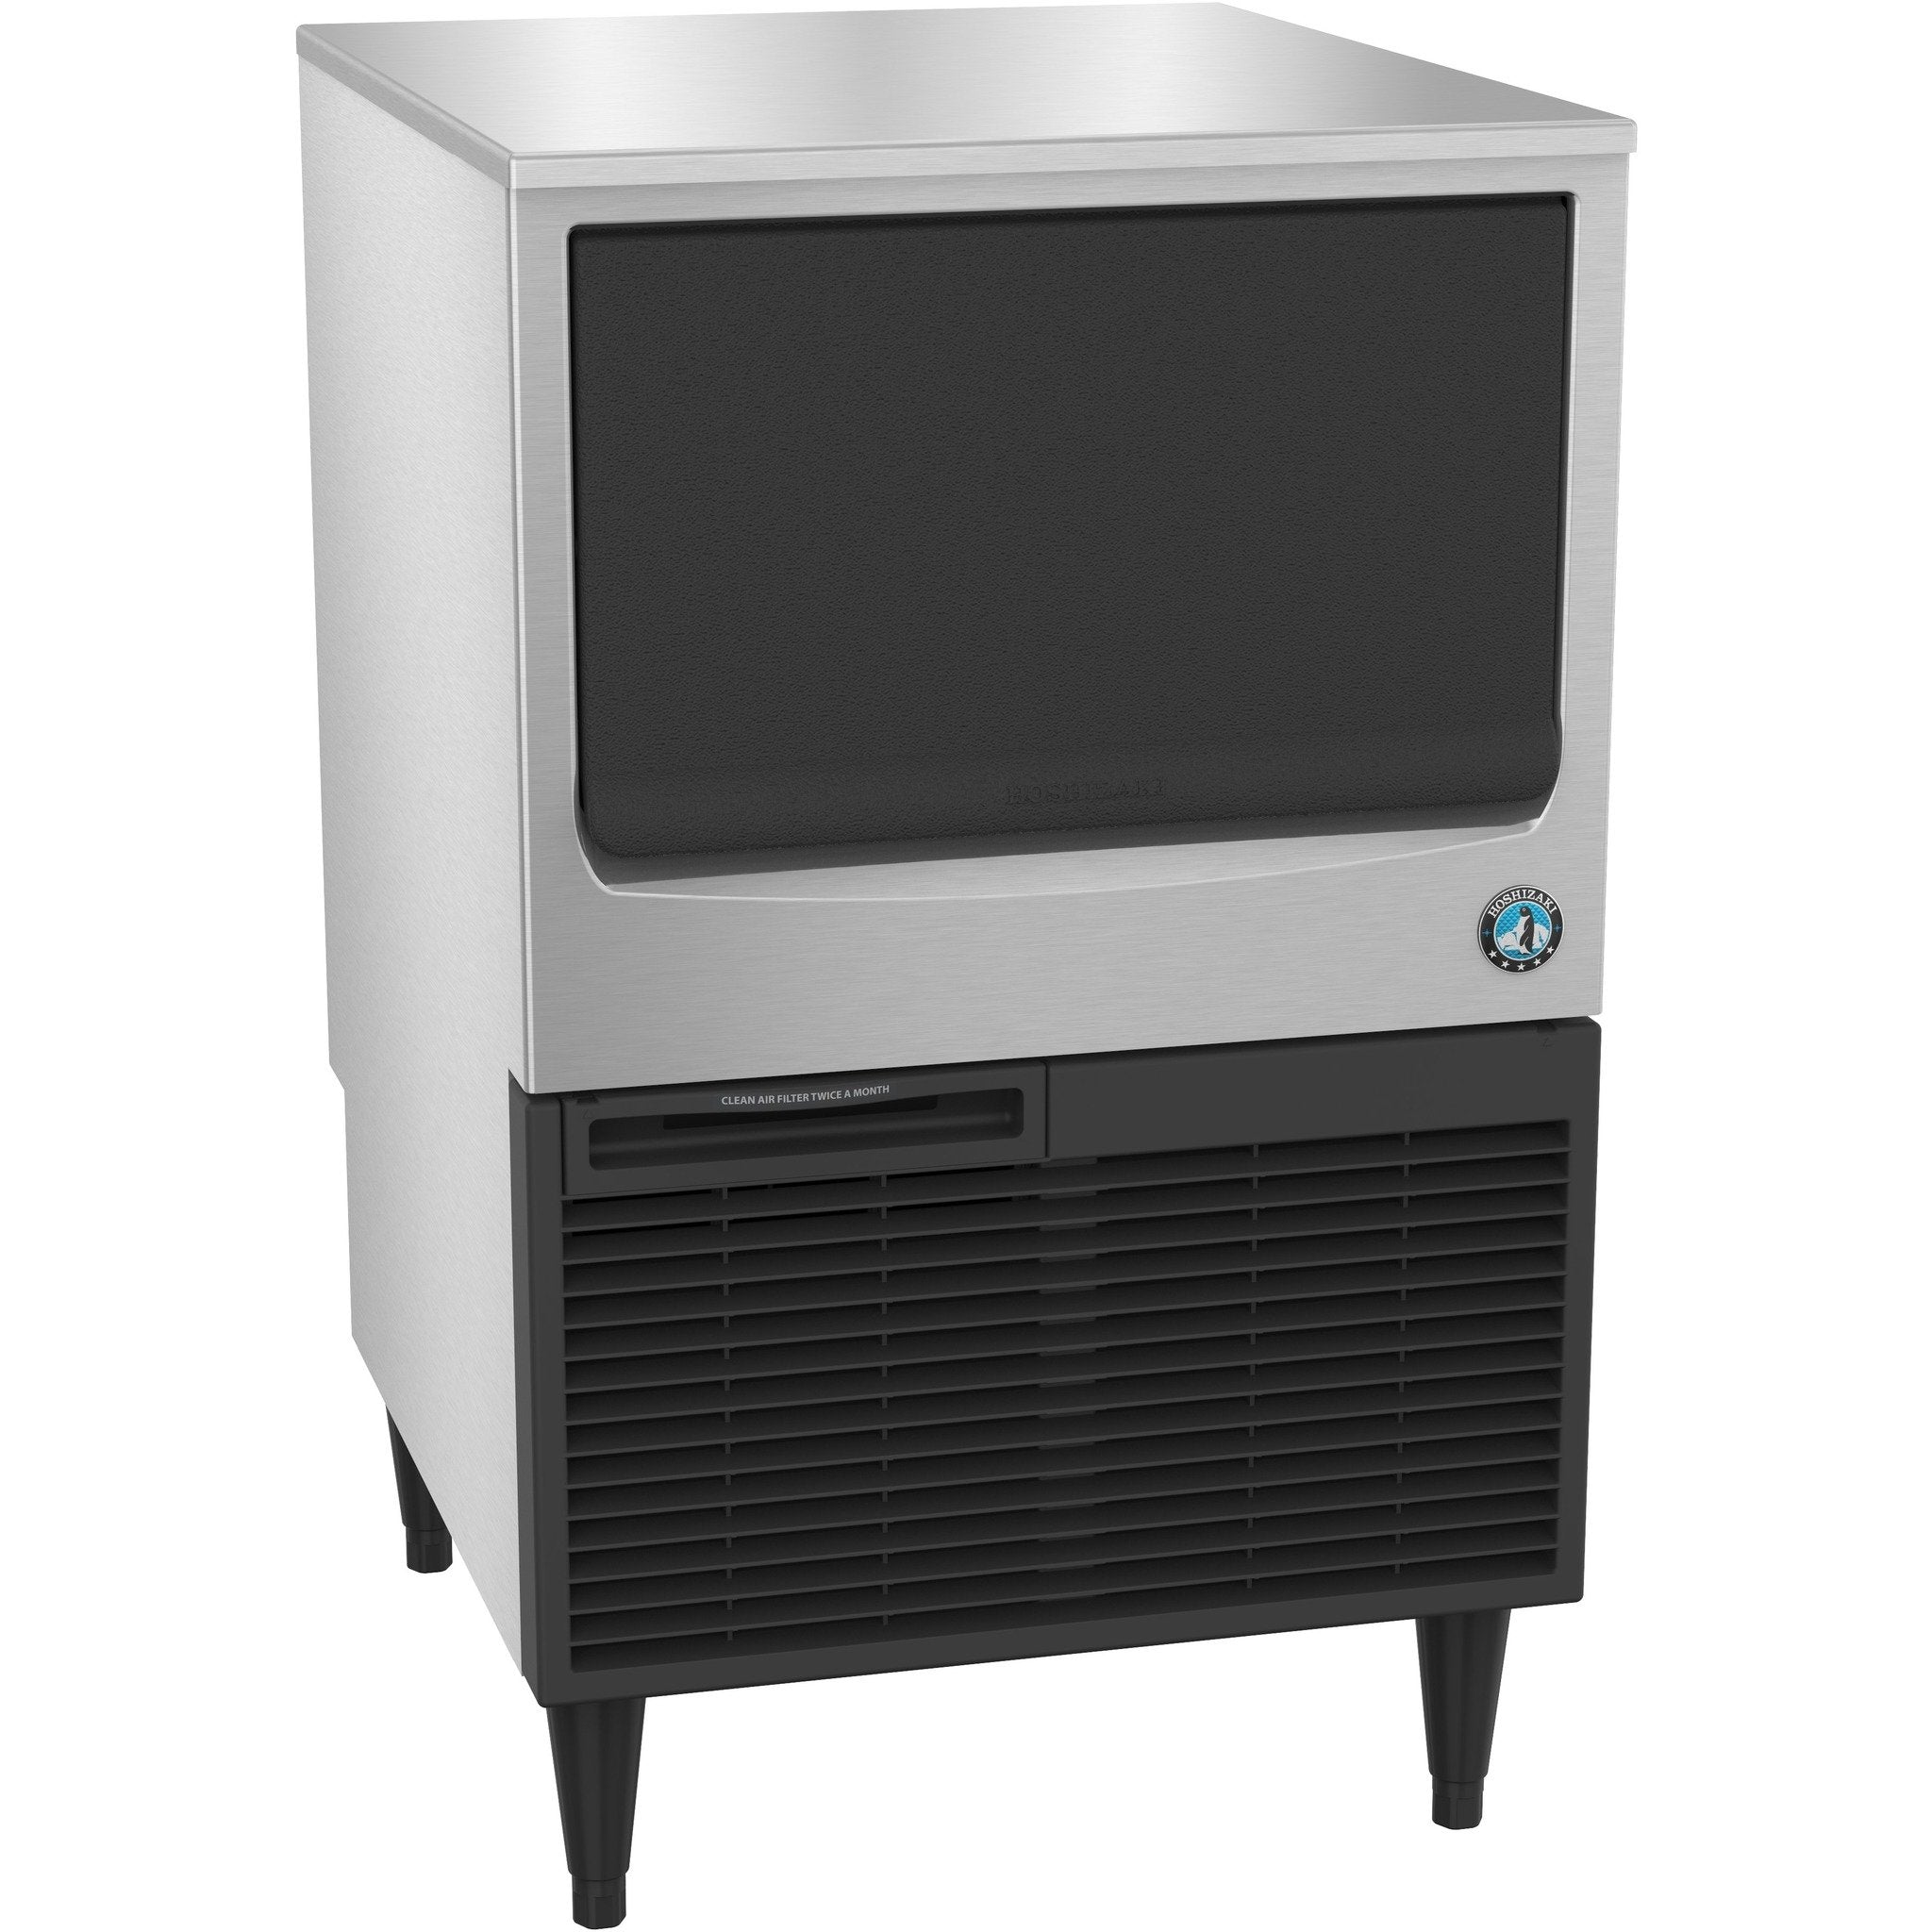 Hoshizaki KM 101BAH Ice Maker Air cooled Self Contained Built